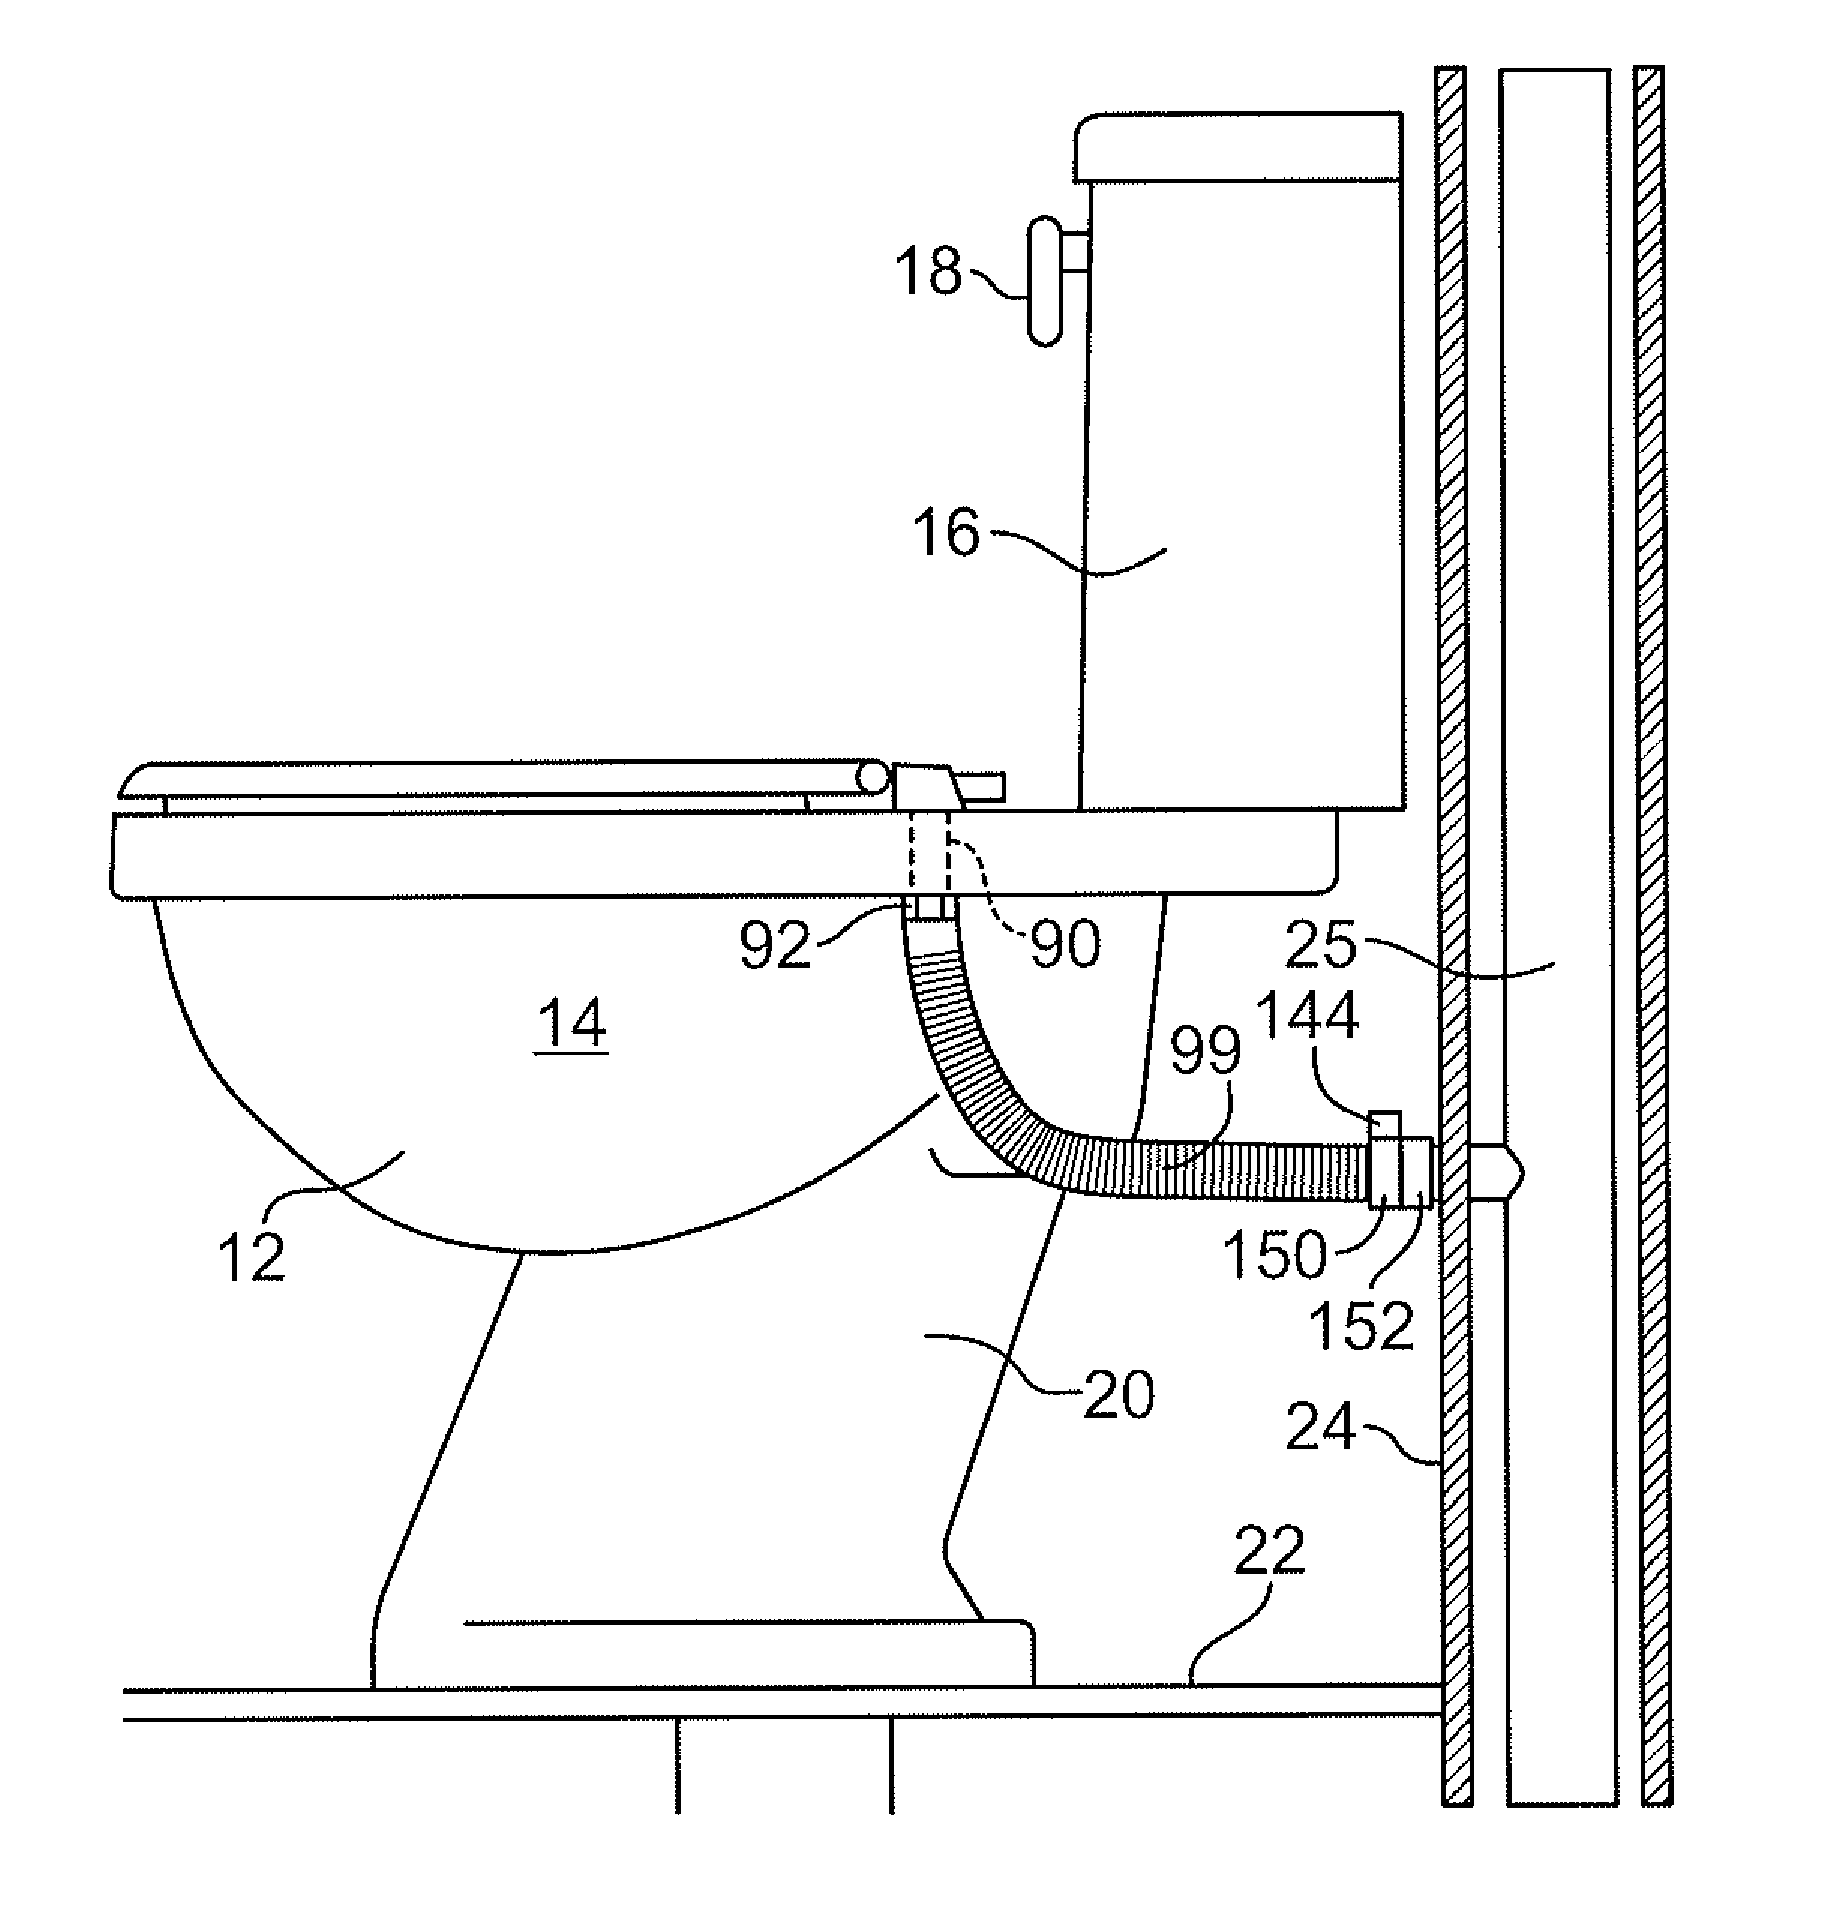 Patent us20120227167 toilet seat with passage system for removal patent us20120227167 toilet seat with passage system for removal pooptronica